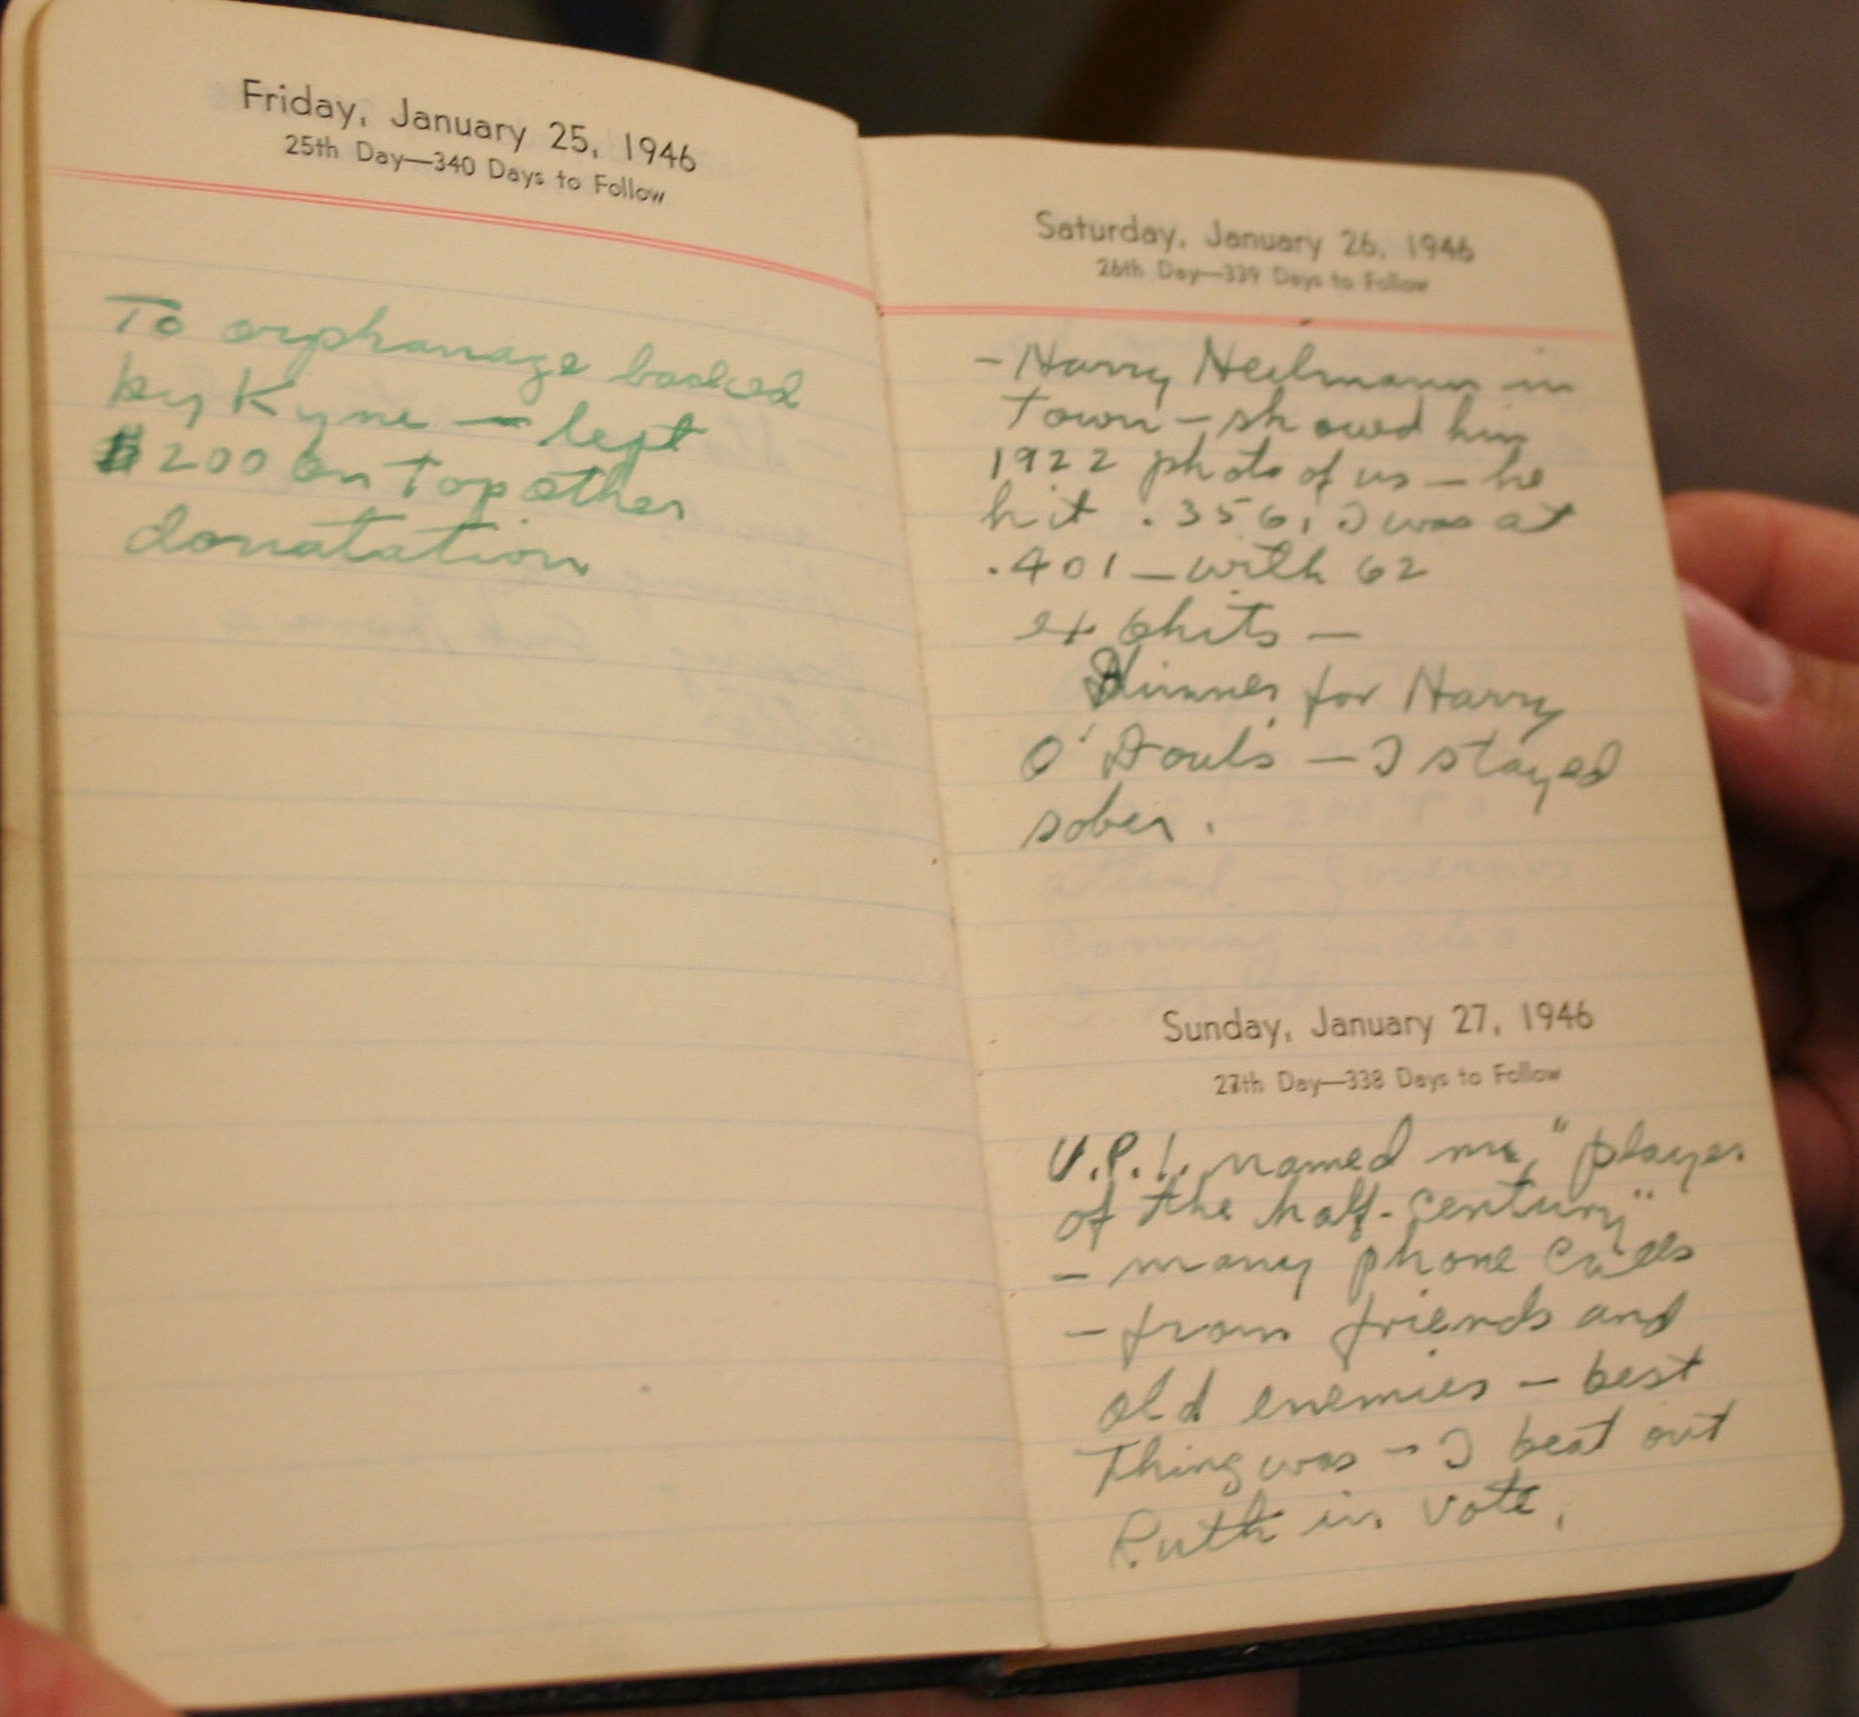 Ty Cobb's 1946 diary purchased by Major League Baseball from Barry Halper and donated to the Baseball Hall of Fame Museum in 1998. This diary was exhibited from 1999 through 2001 in the Barry Halper Gallery at the Hall of Fame. An FBI investigation in 2009 determined that the diary was a forgery. A recent comparison of the writings in this diary to the writings of Al Stump on the baseball-publication pages shown in exhibit 9 lead autograph expert Ronand B. Keurajian to conclude that Al Stump was the forger who created this diary.